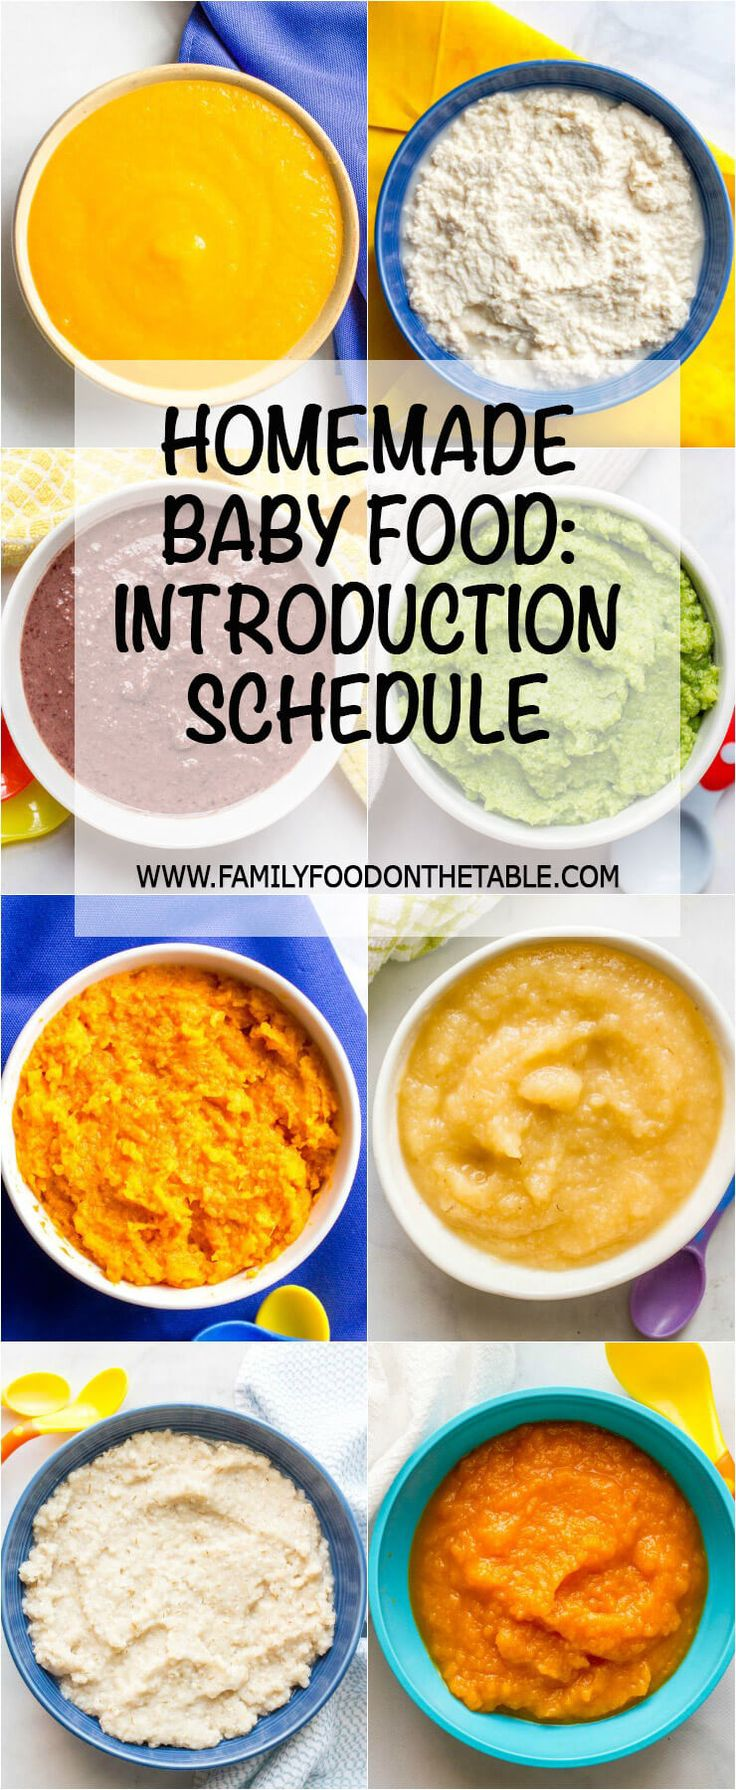 Homemade baby food introducing solids schedule -- a sample schedule of what baby foods to introduce at different stages | www.familyfoodonthetable.com